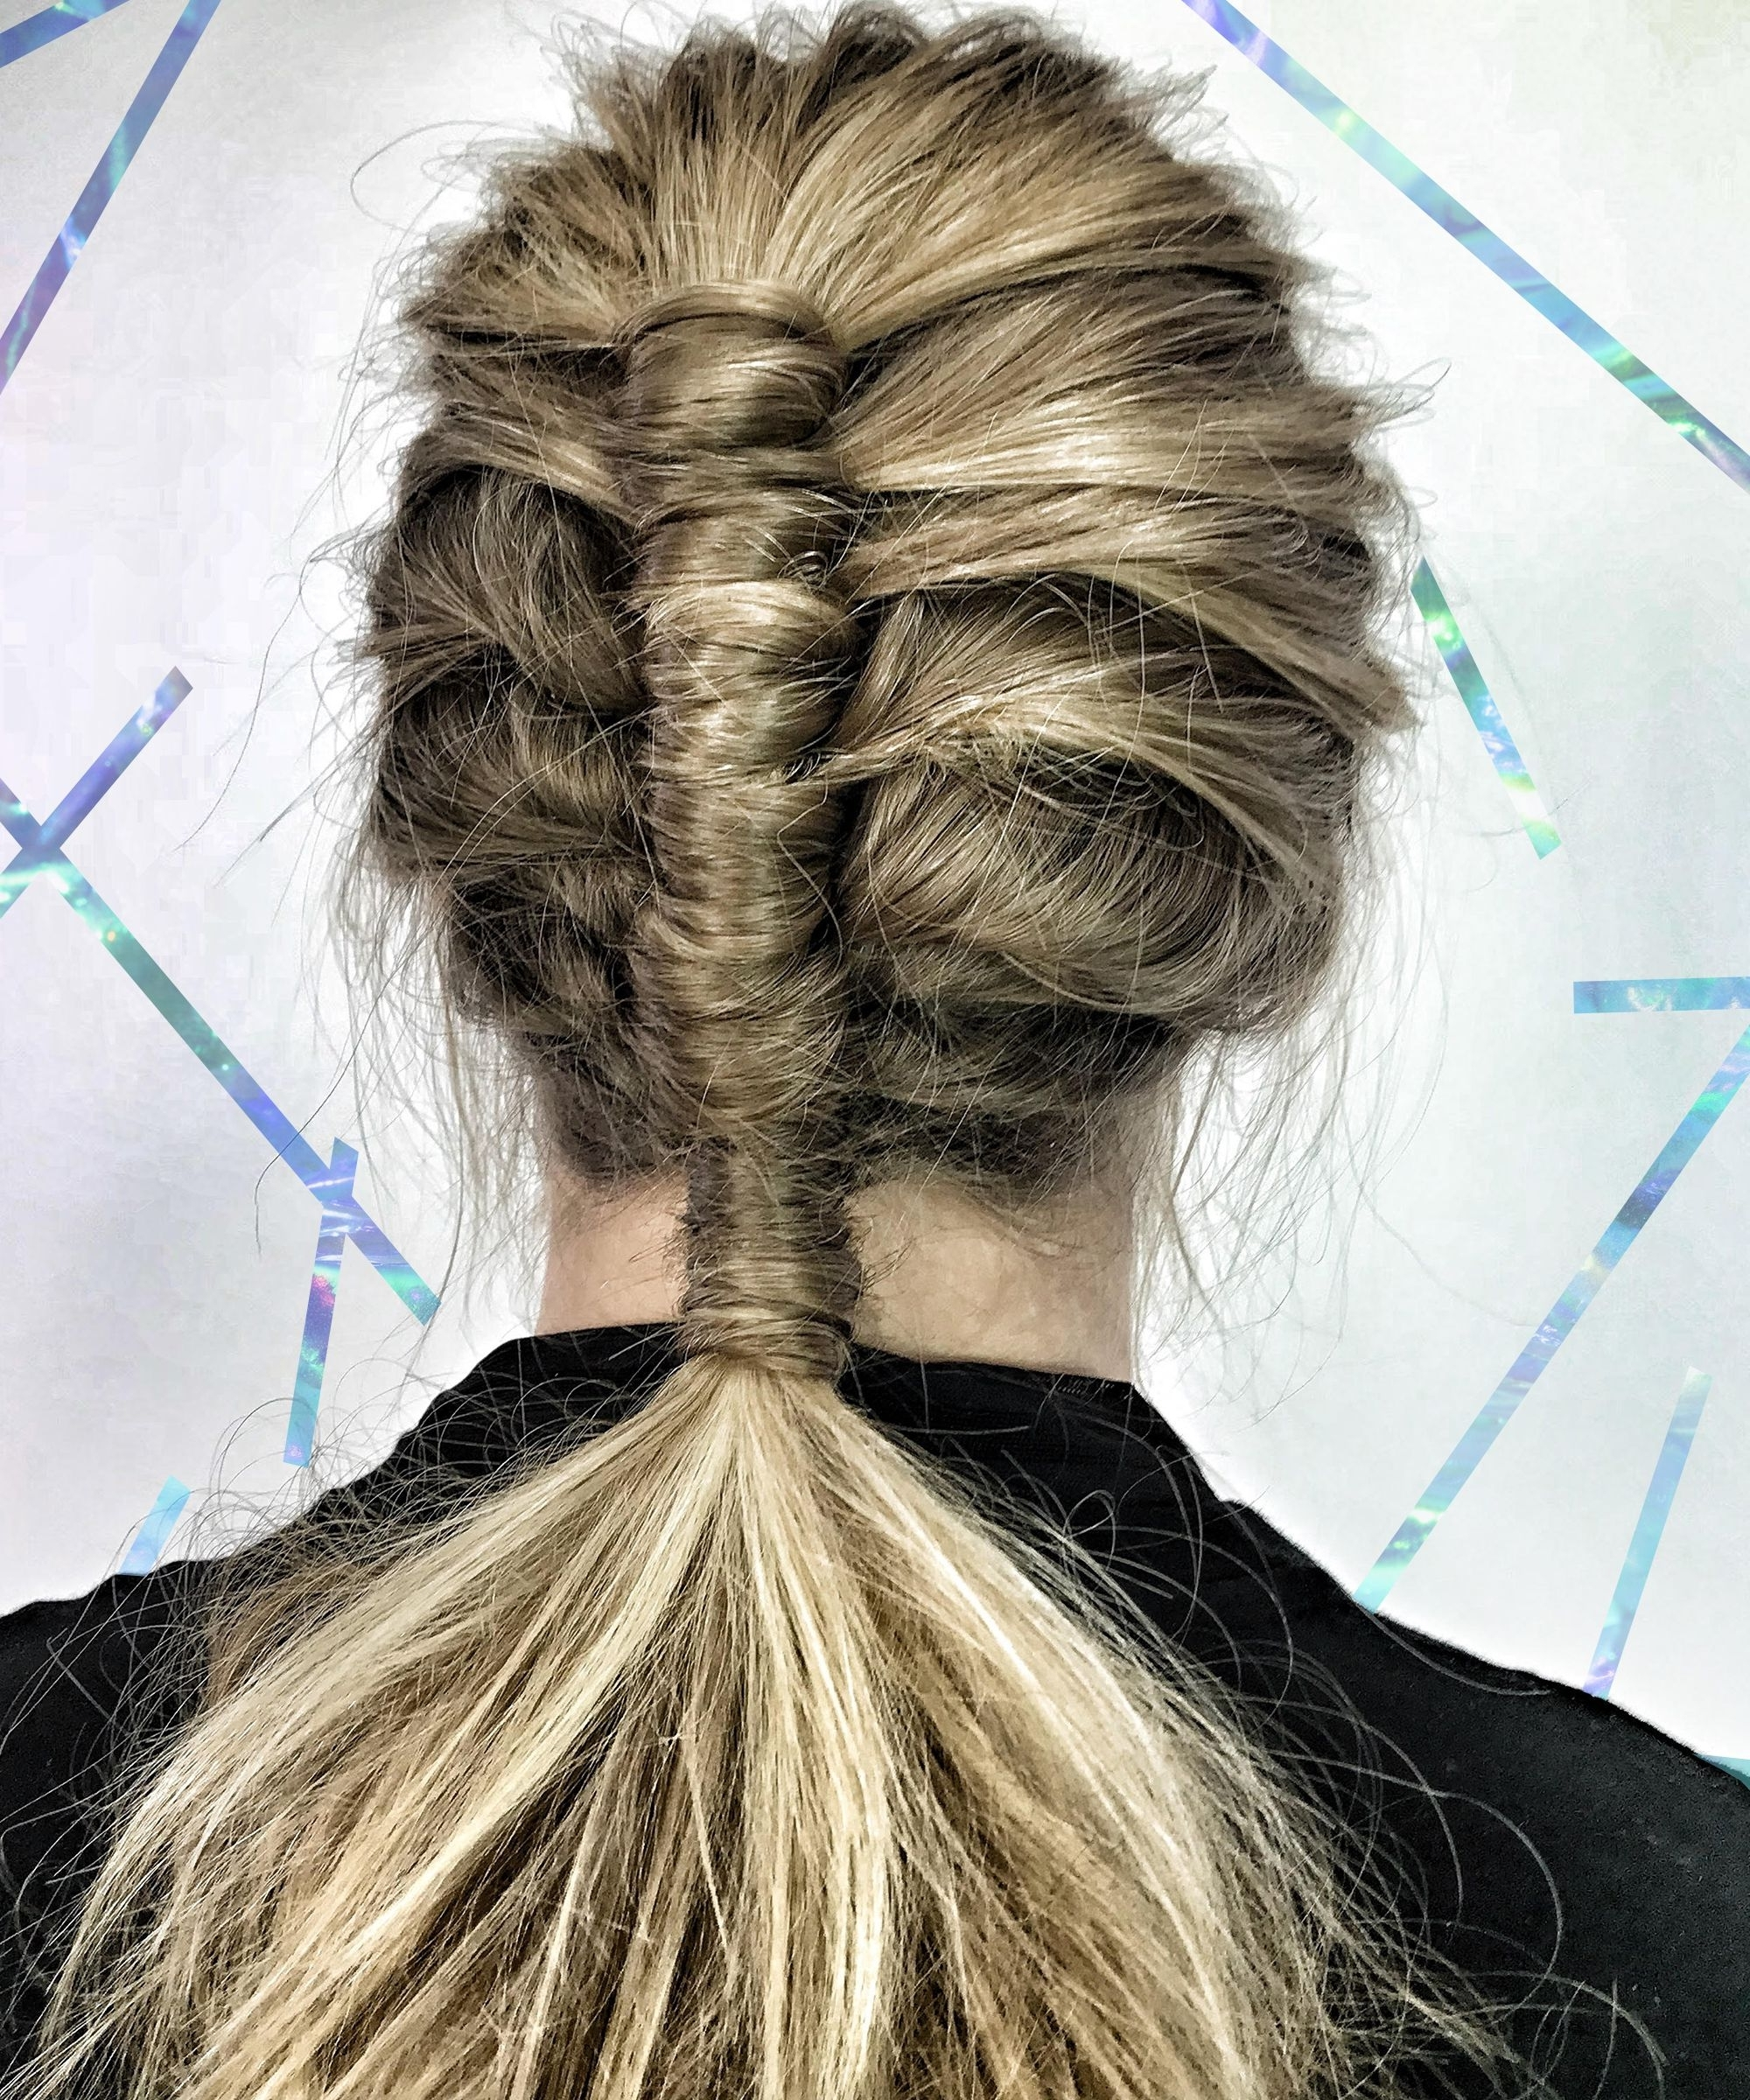 Newest Braided Millennial Pink Pony Hairstyles Throughout Festival Hair Trend Pipe Braid Technique Tutorial (View 12 of 20)